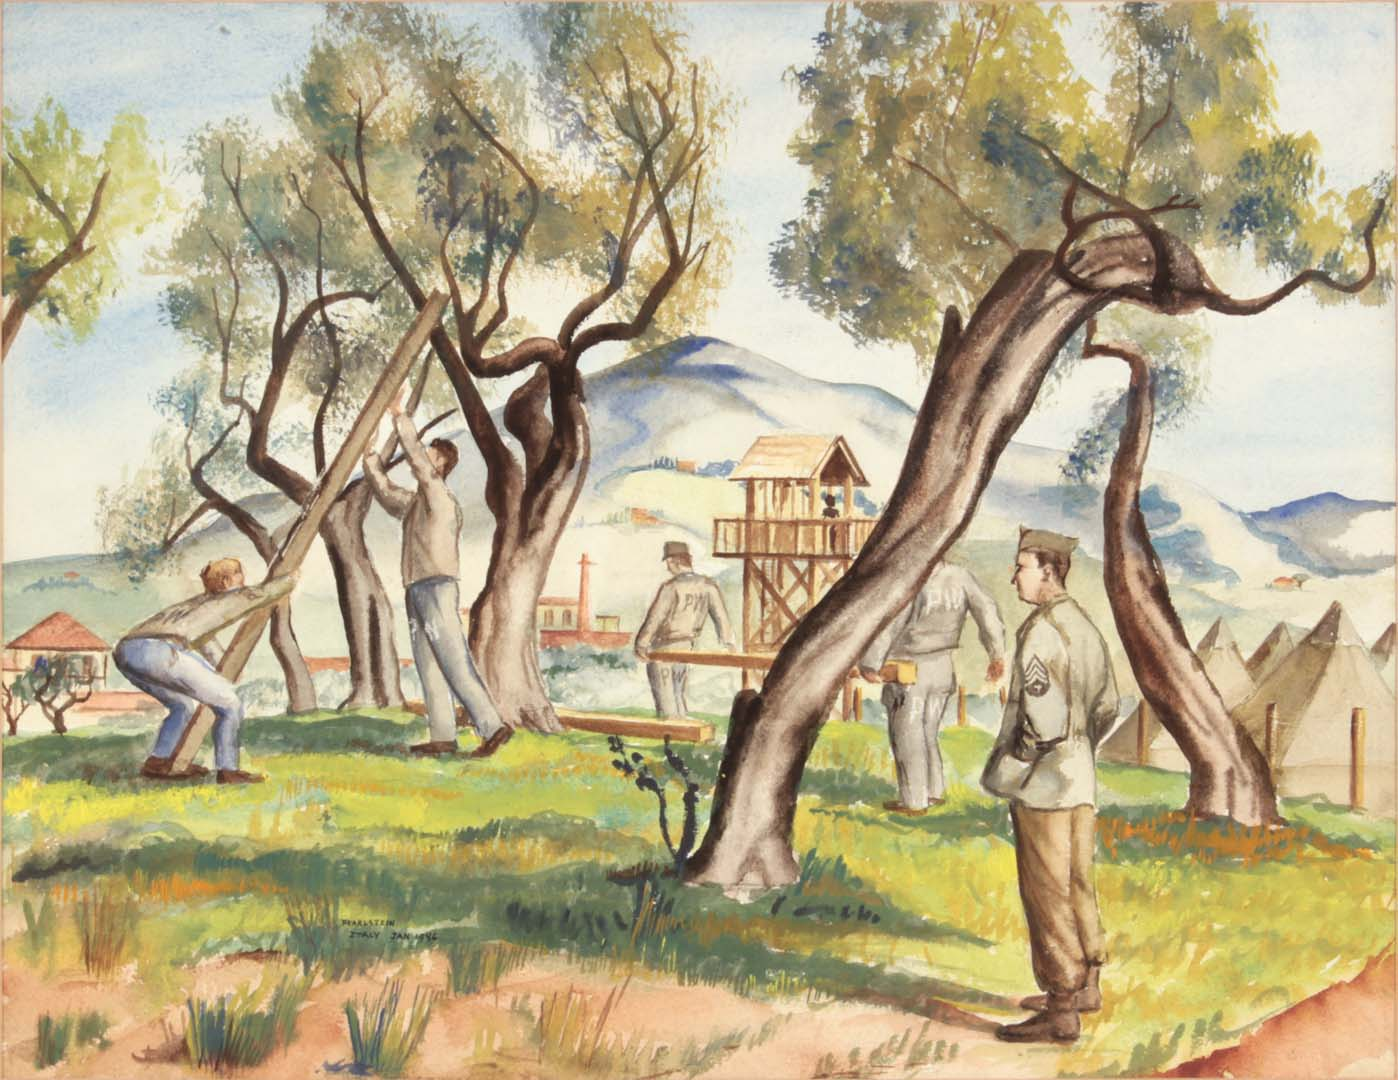 1946 Livorno Italy (Soldiers and PW Building Camp) Watercolor on Paper 13.50 x 17.50